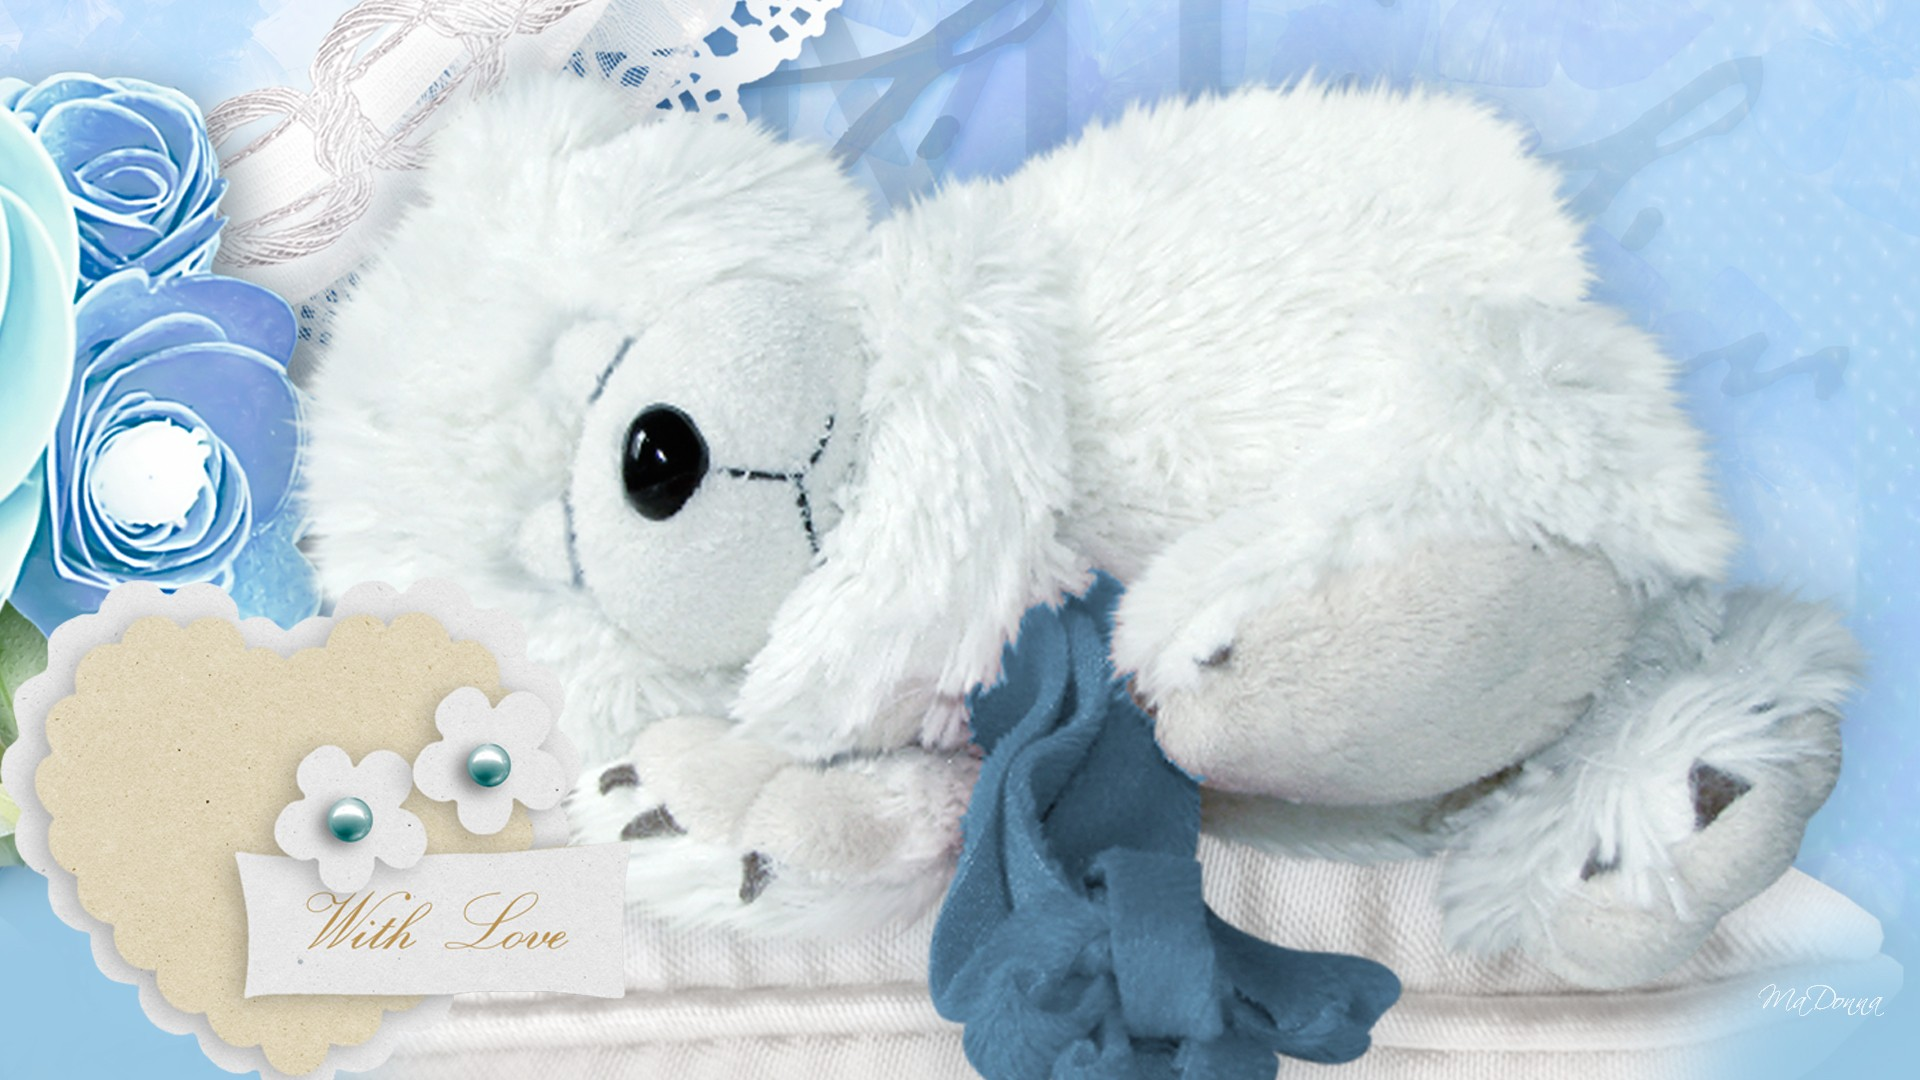 Sleep Teddy Bear Cute Wallpaper